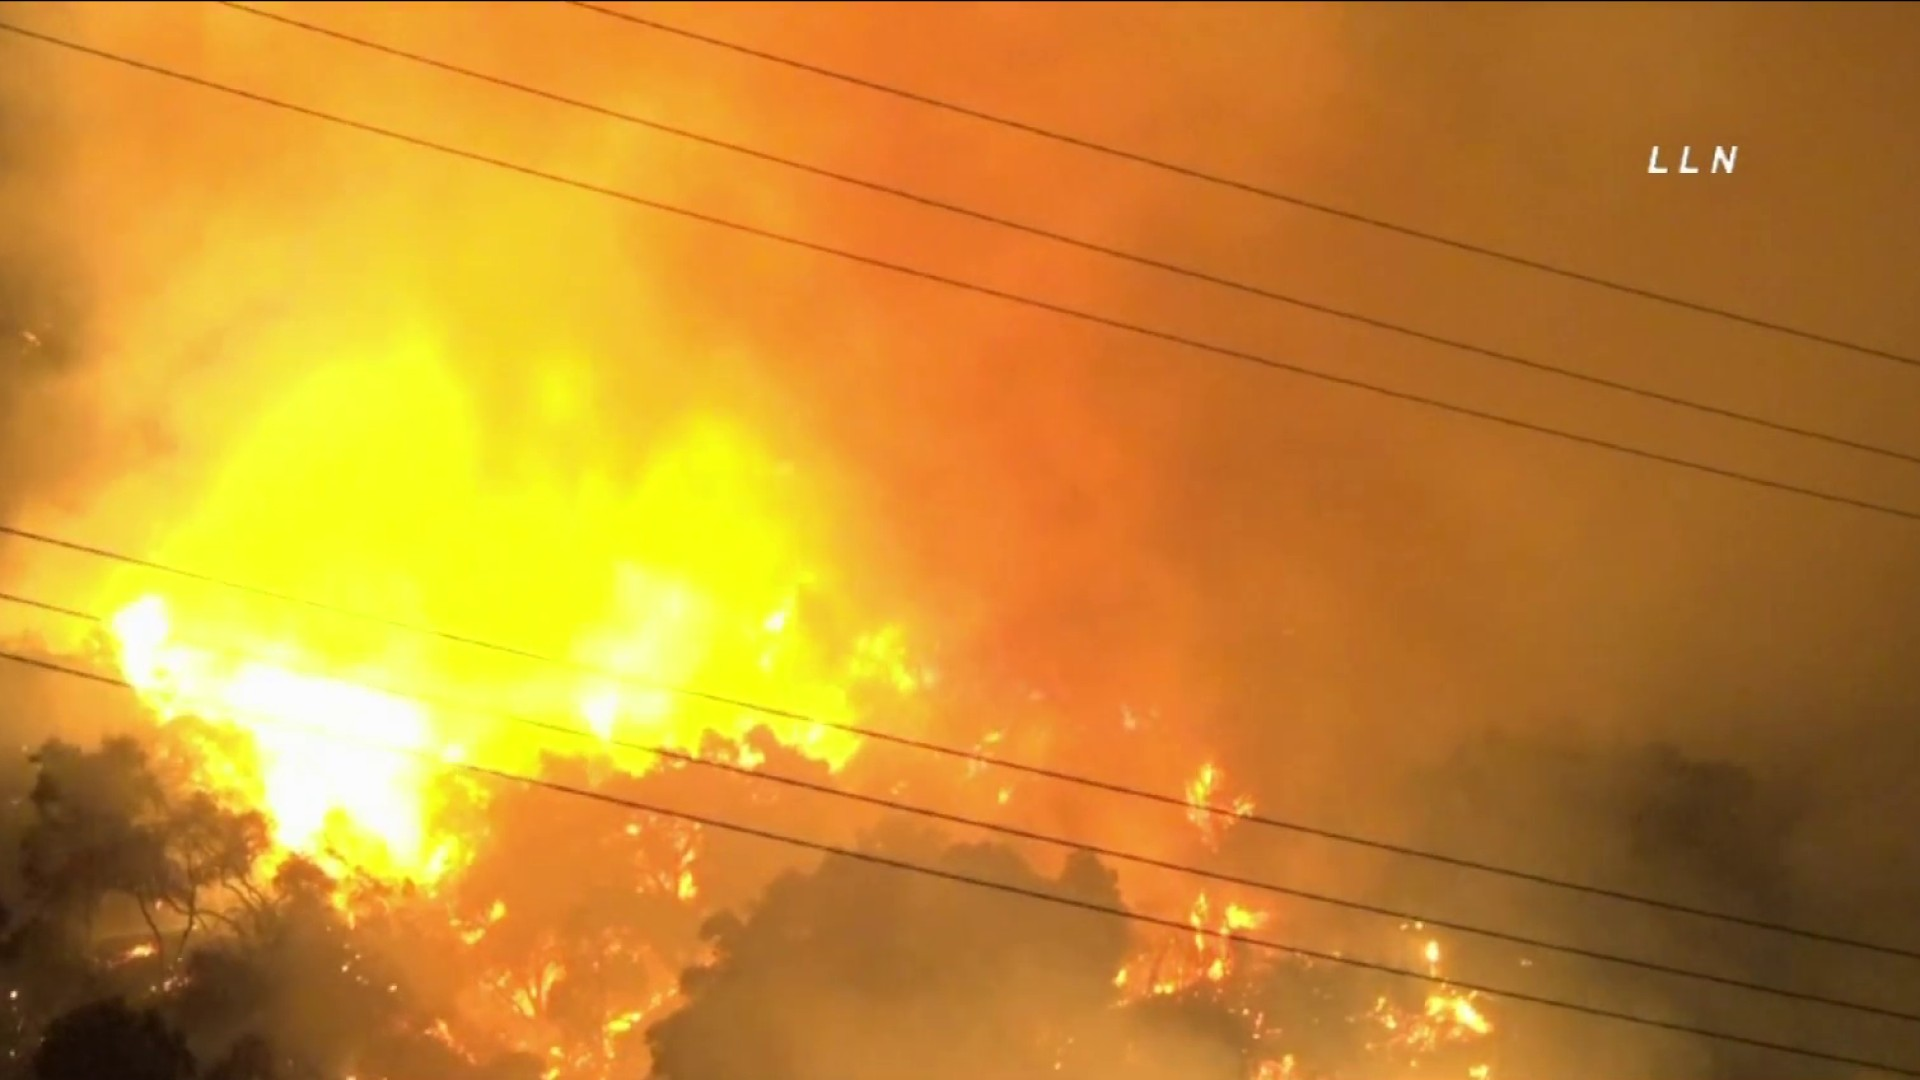 Bobcat Fire Grows to 41,000 Acres, Containment Drops From 6% to 3%